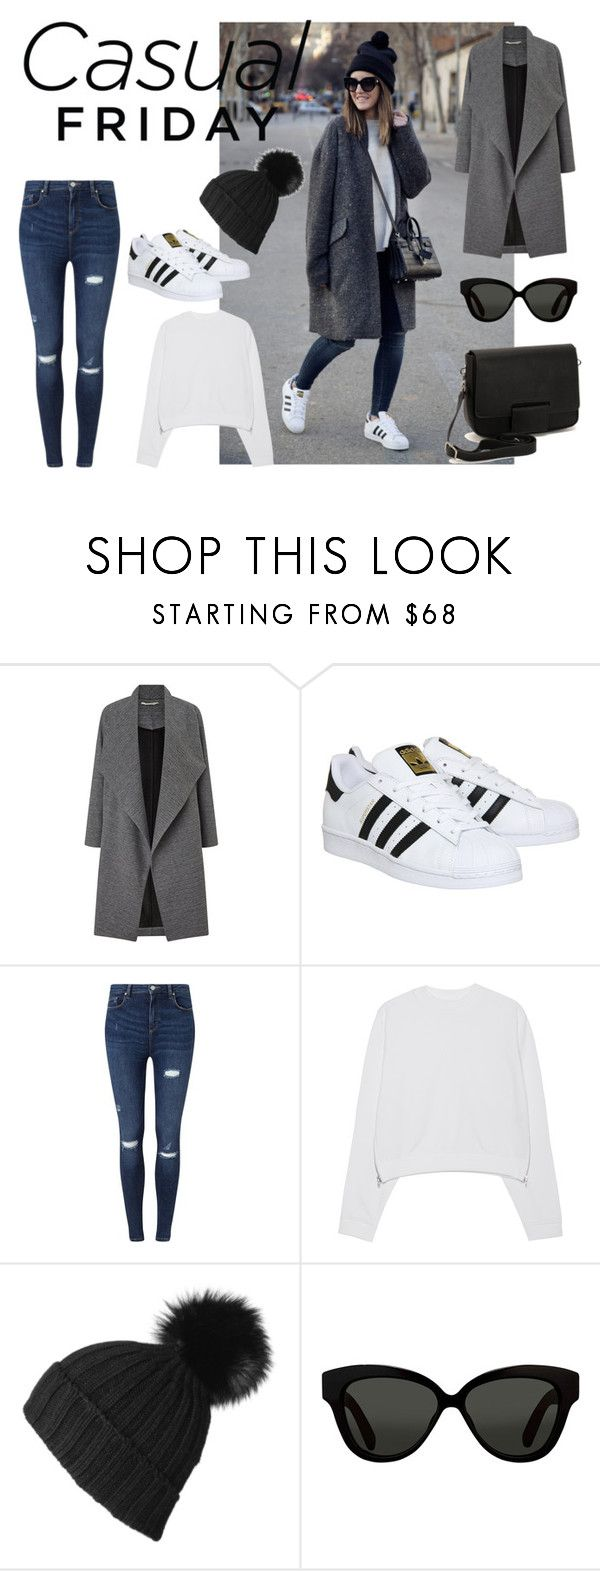 Shop the look - cashual friday by shop-styleloft on Polyvore